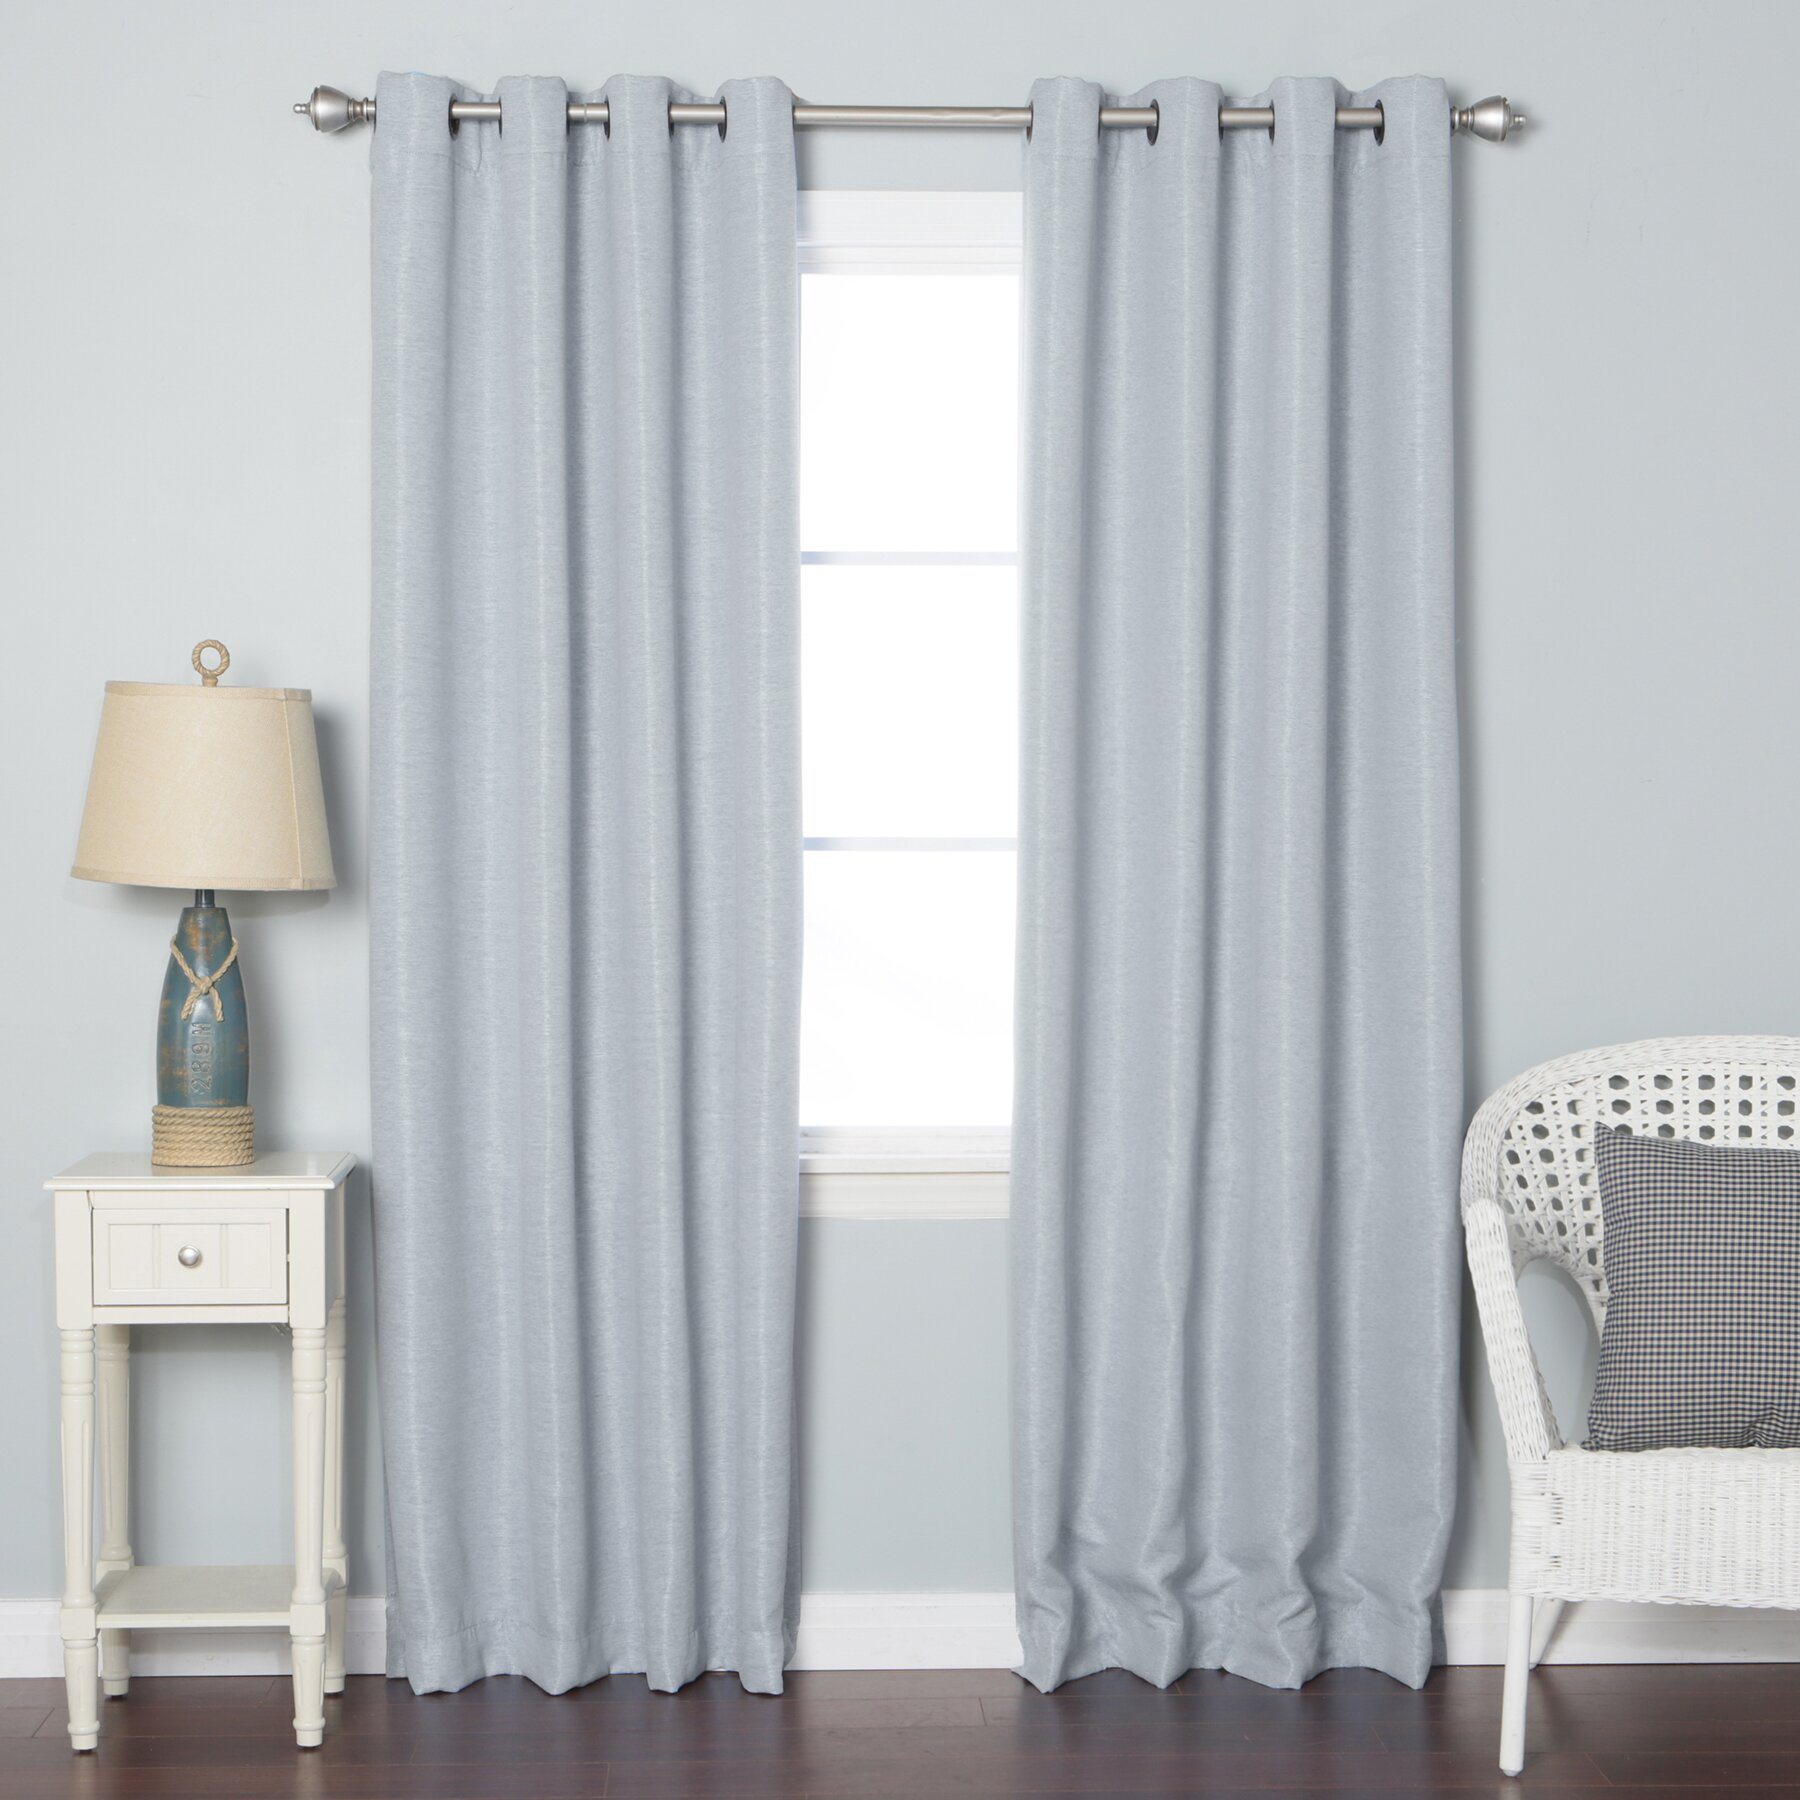 Best home fashion curtains 45